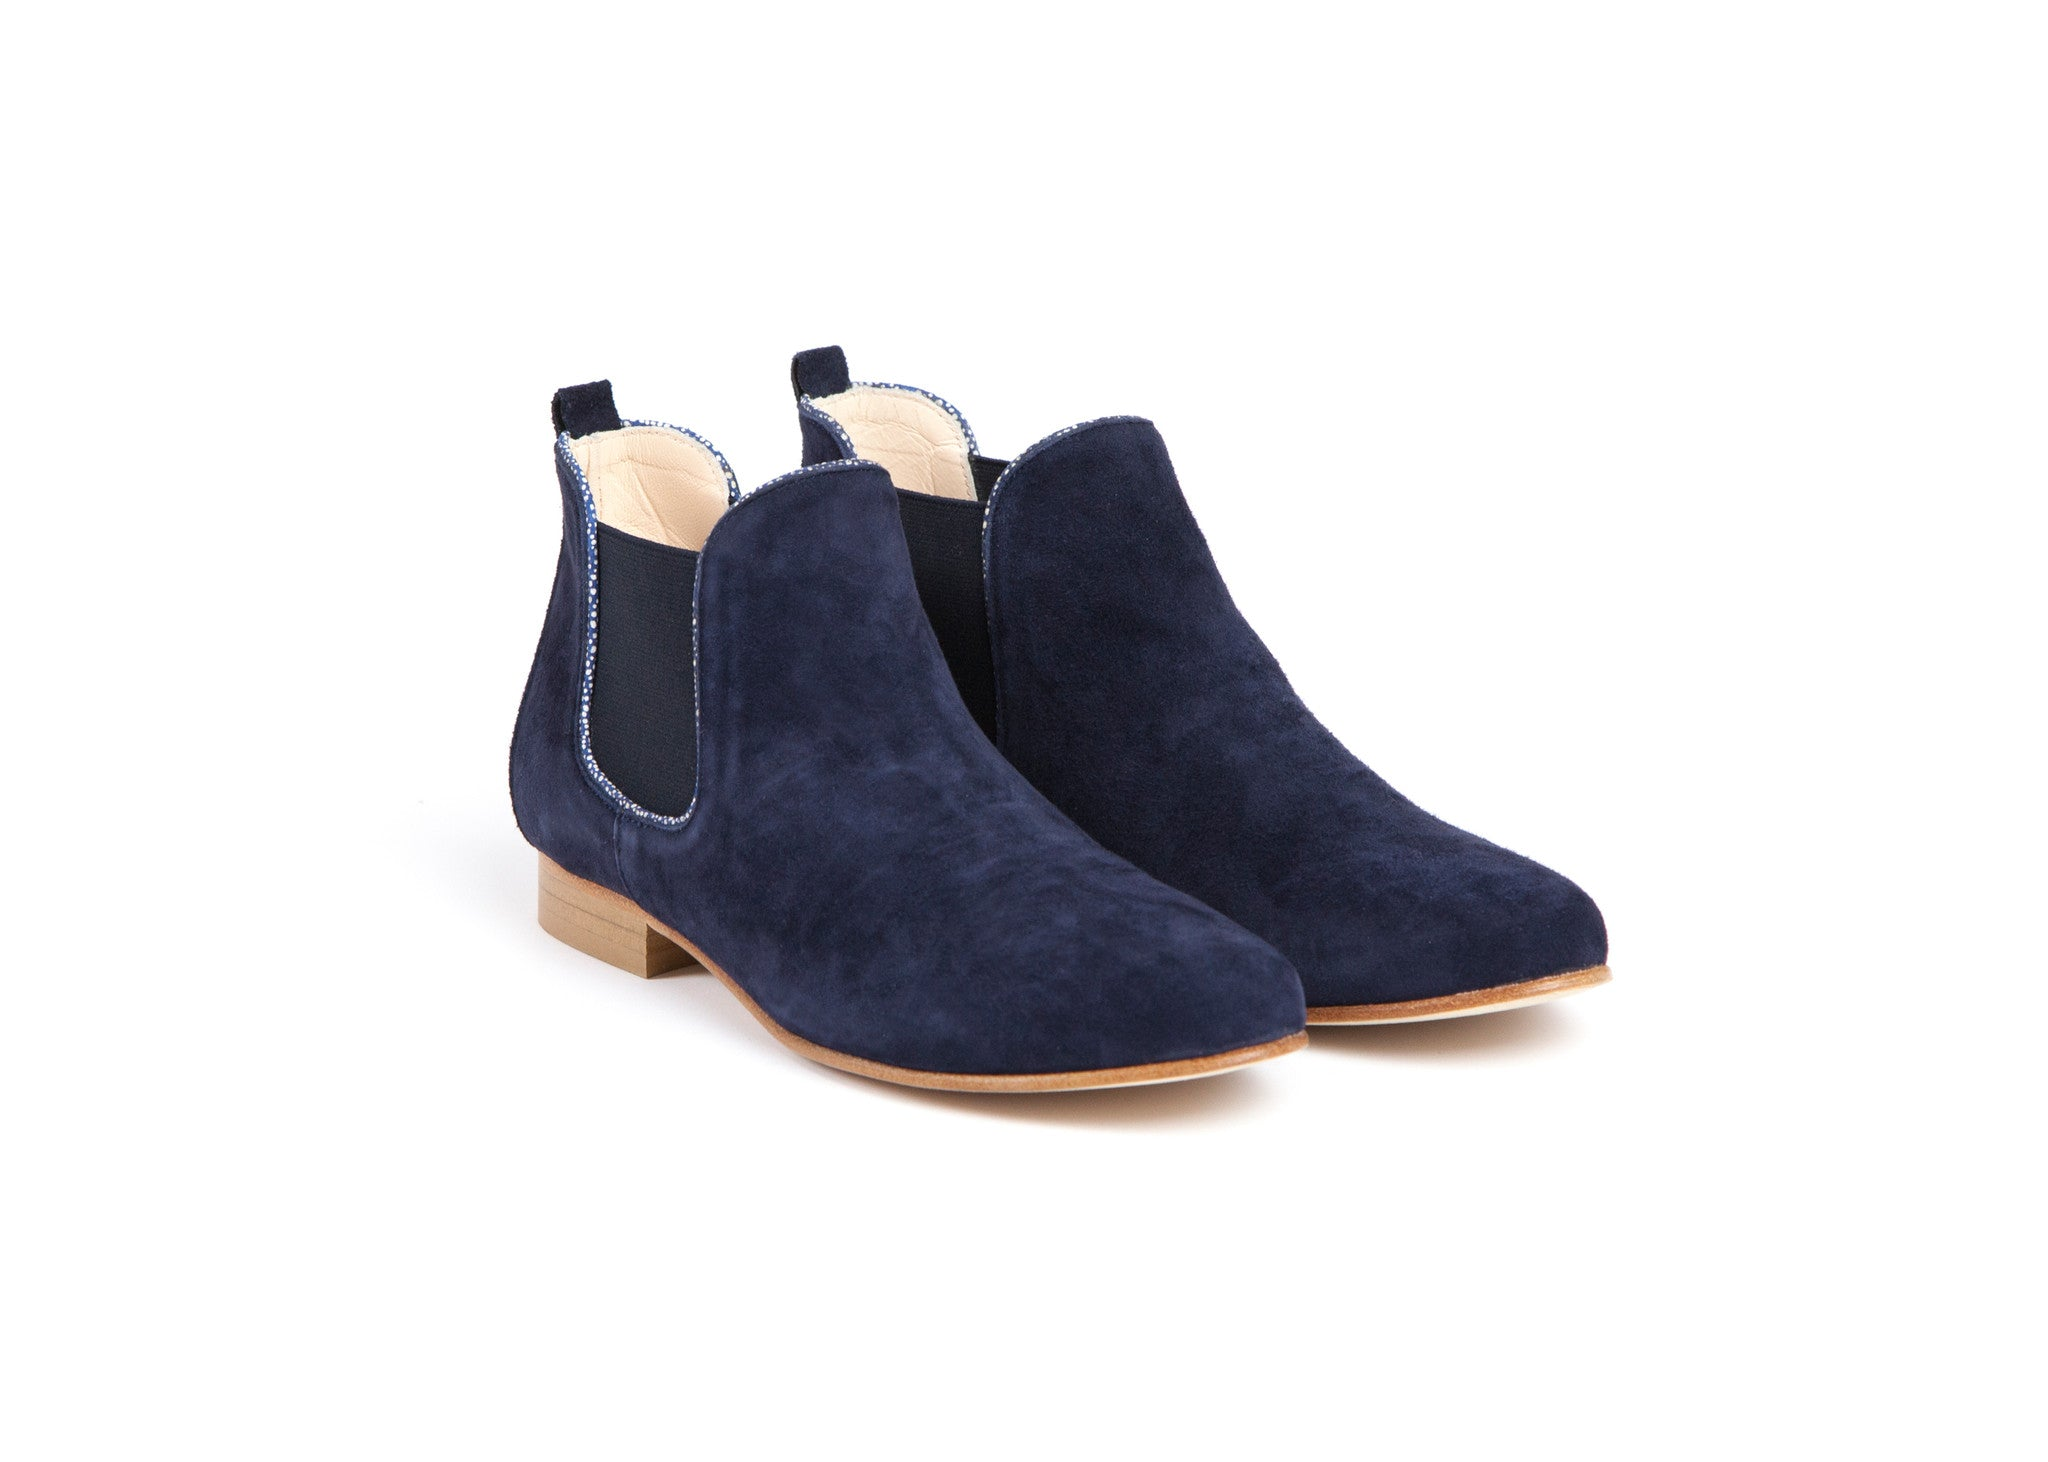 Leather Ankle Boots Navy Anaki The Parisian By Lingenue Slingback Home Products Suede Bootsonly One Size Left